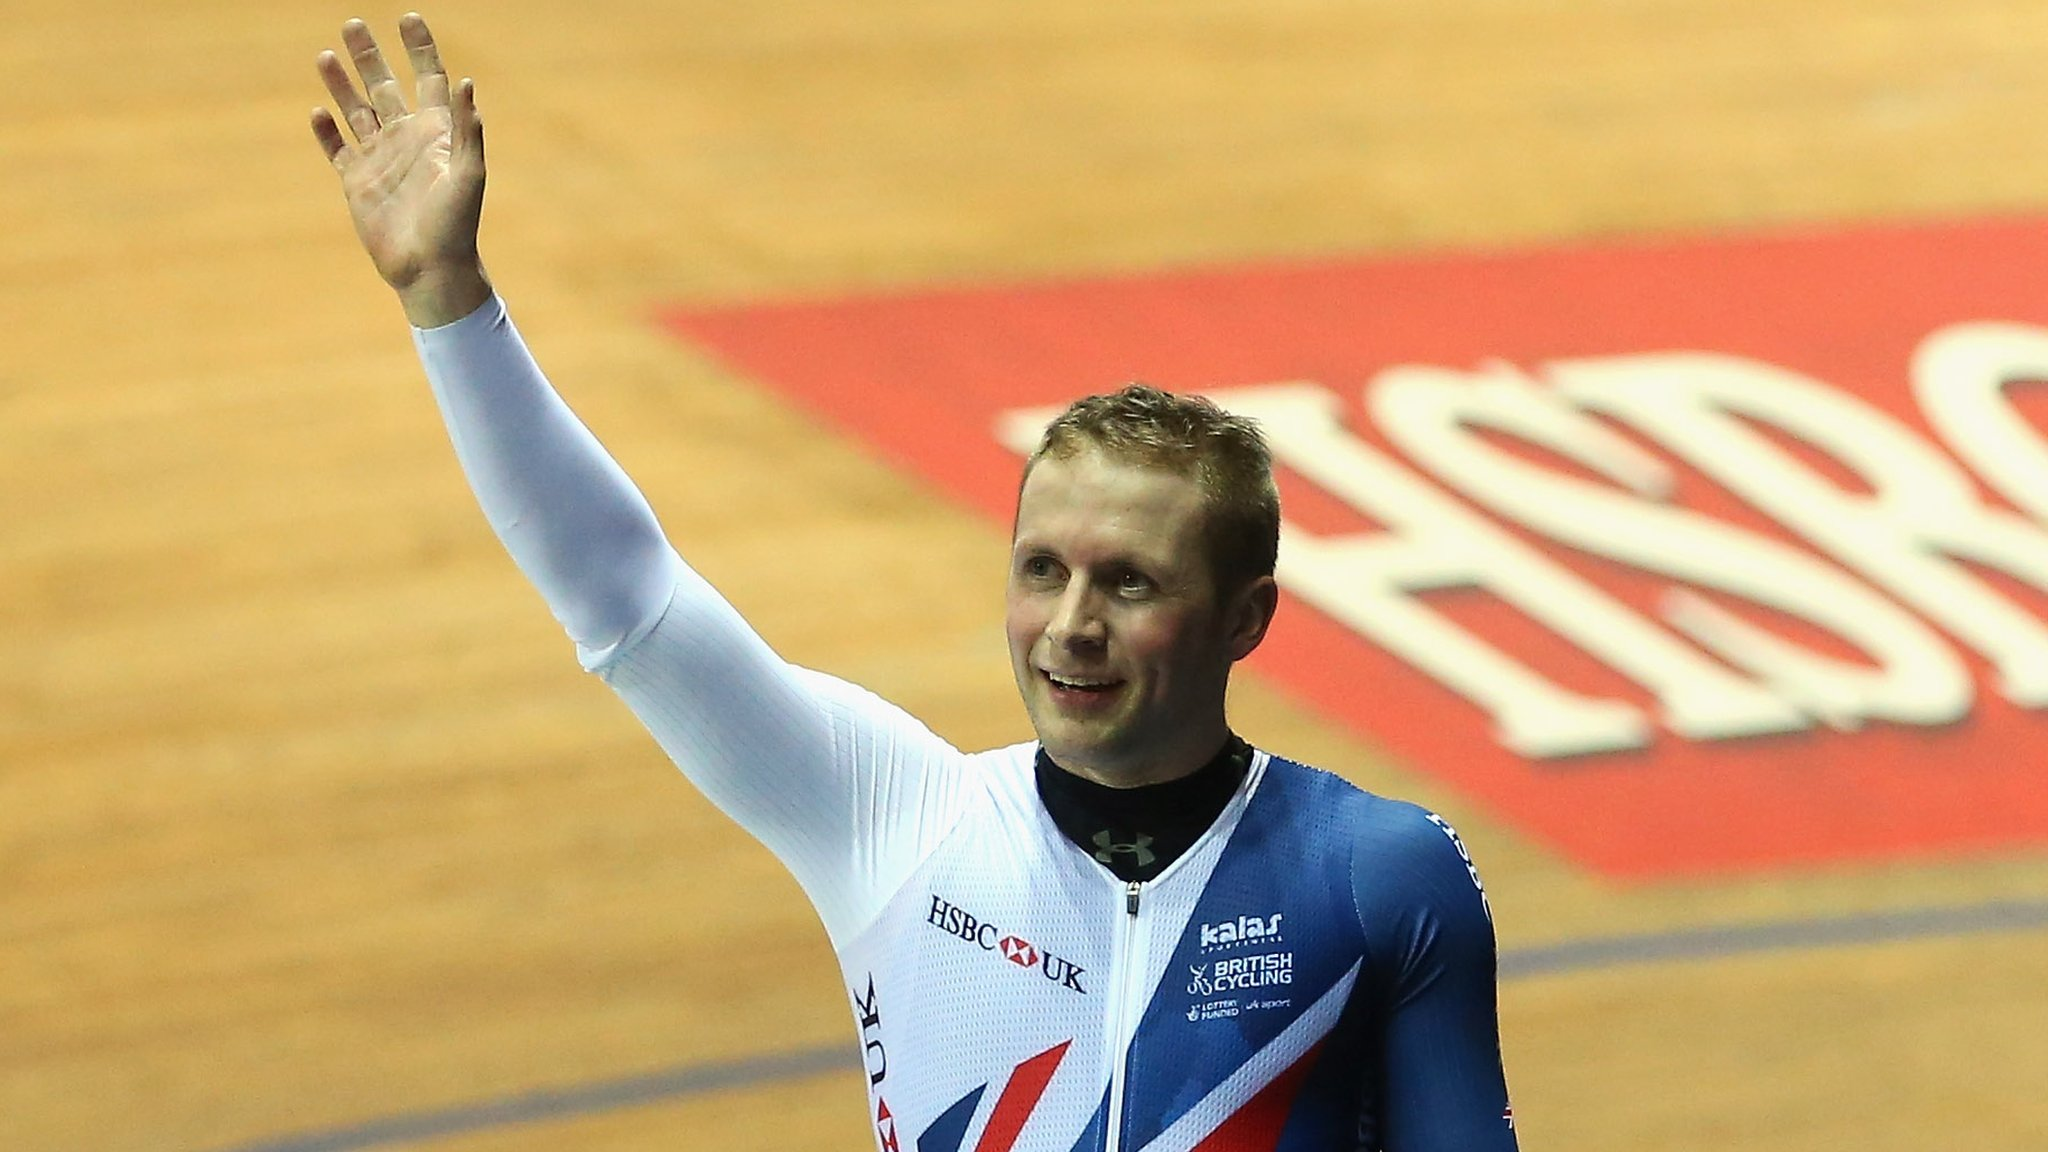 National Track Championships: Jason Kenny set to compete in 2018 event